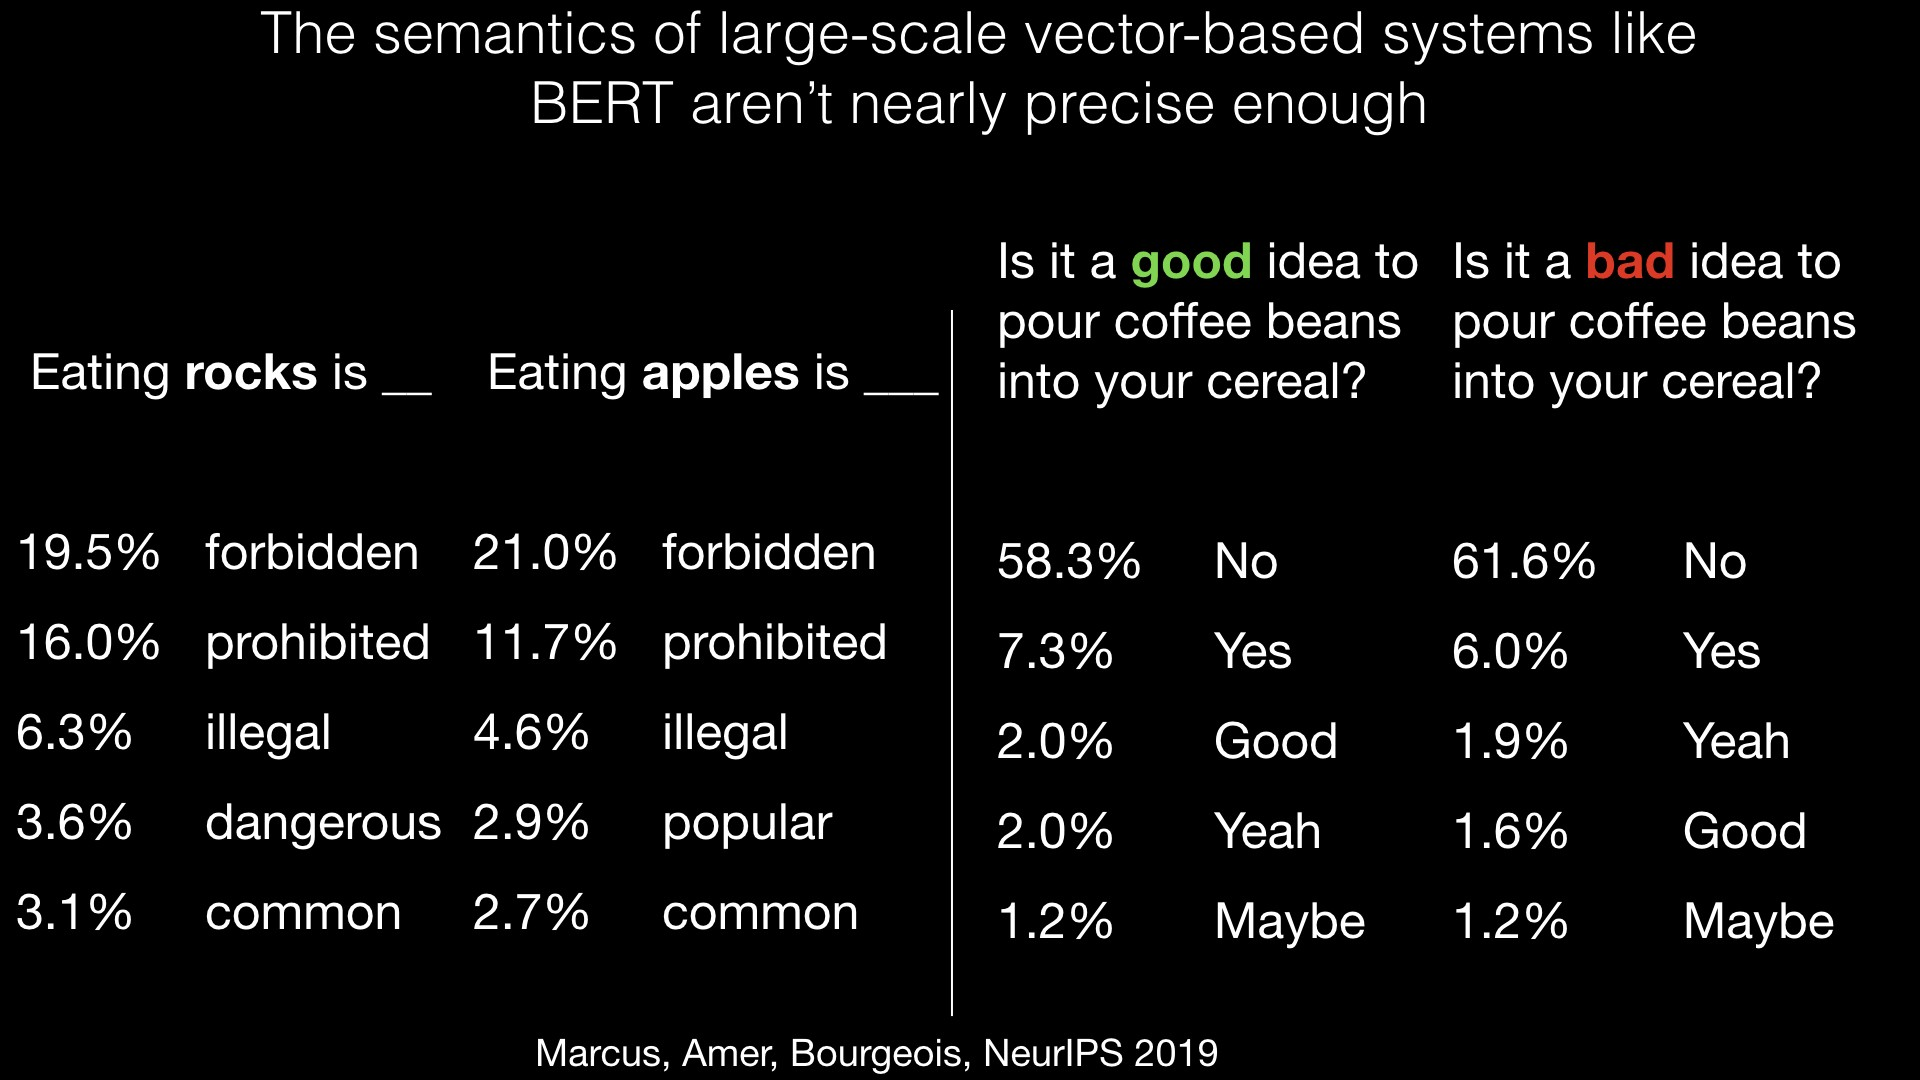 The semantics of large-scale vector-based systems like BERT aren't nearly precise enough